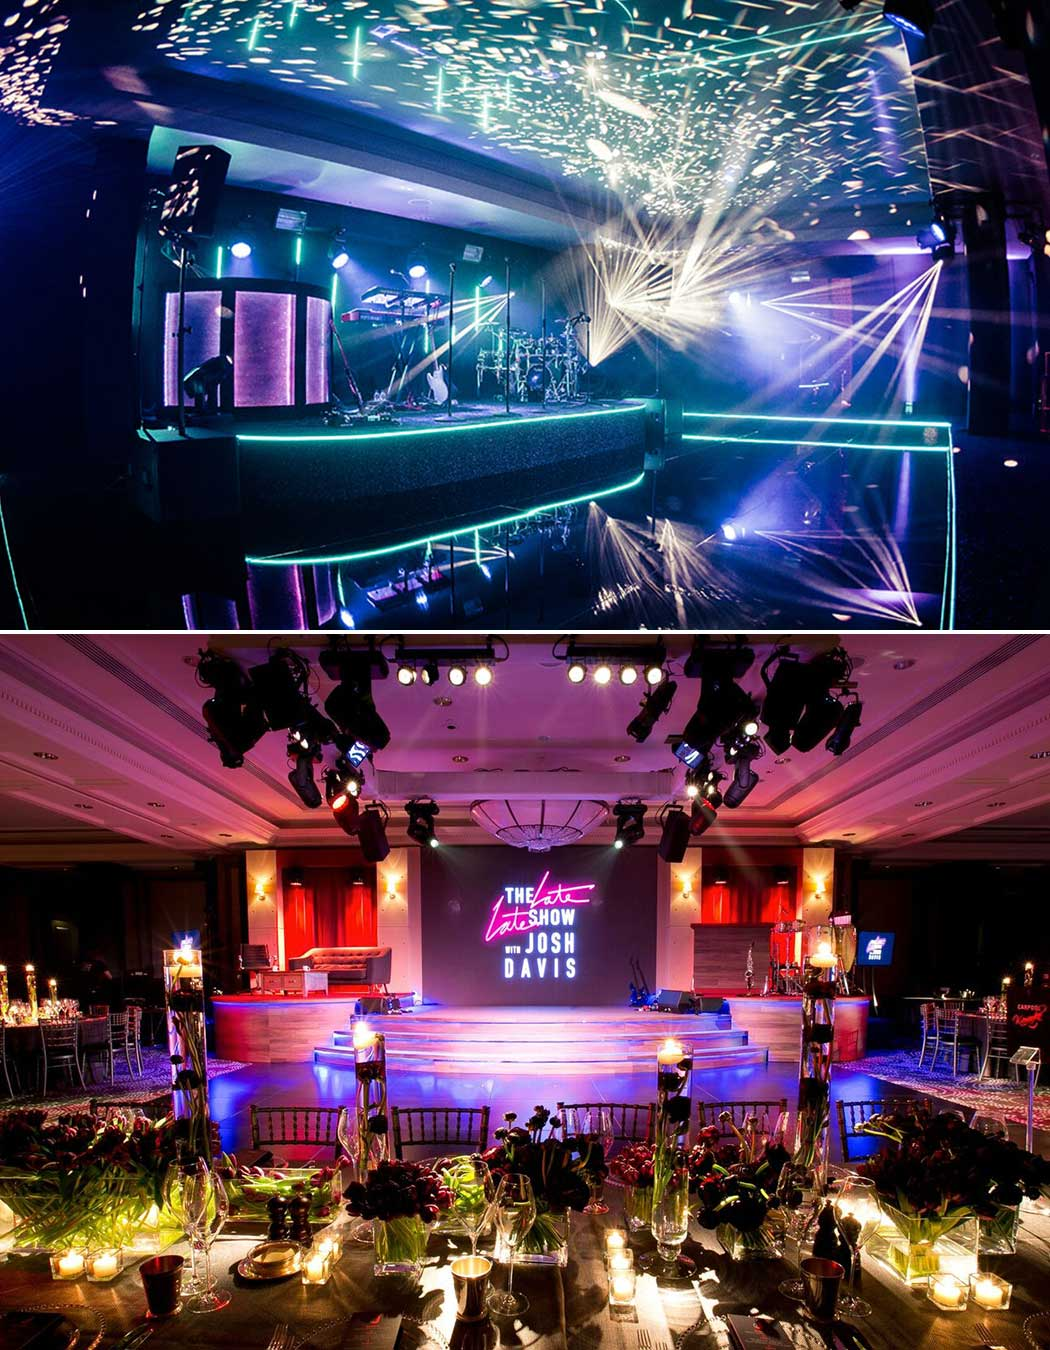 JustSeventy Creative Events Production